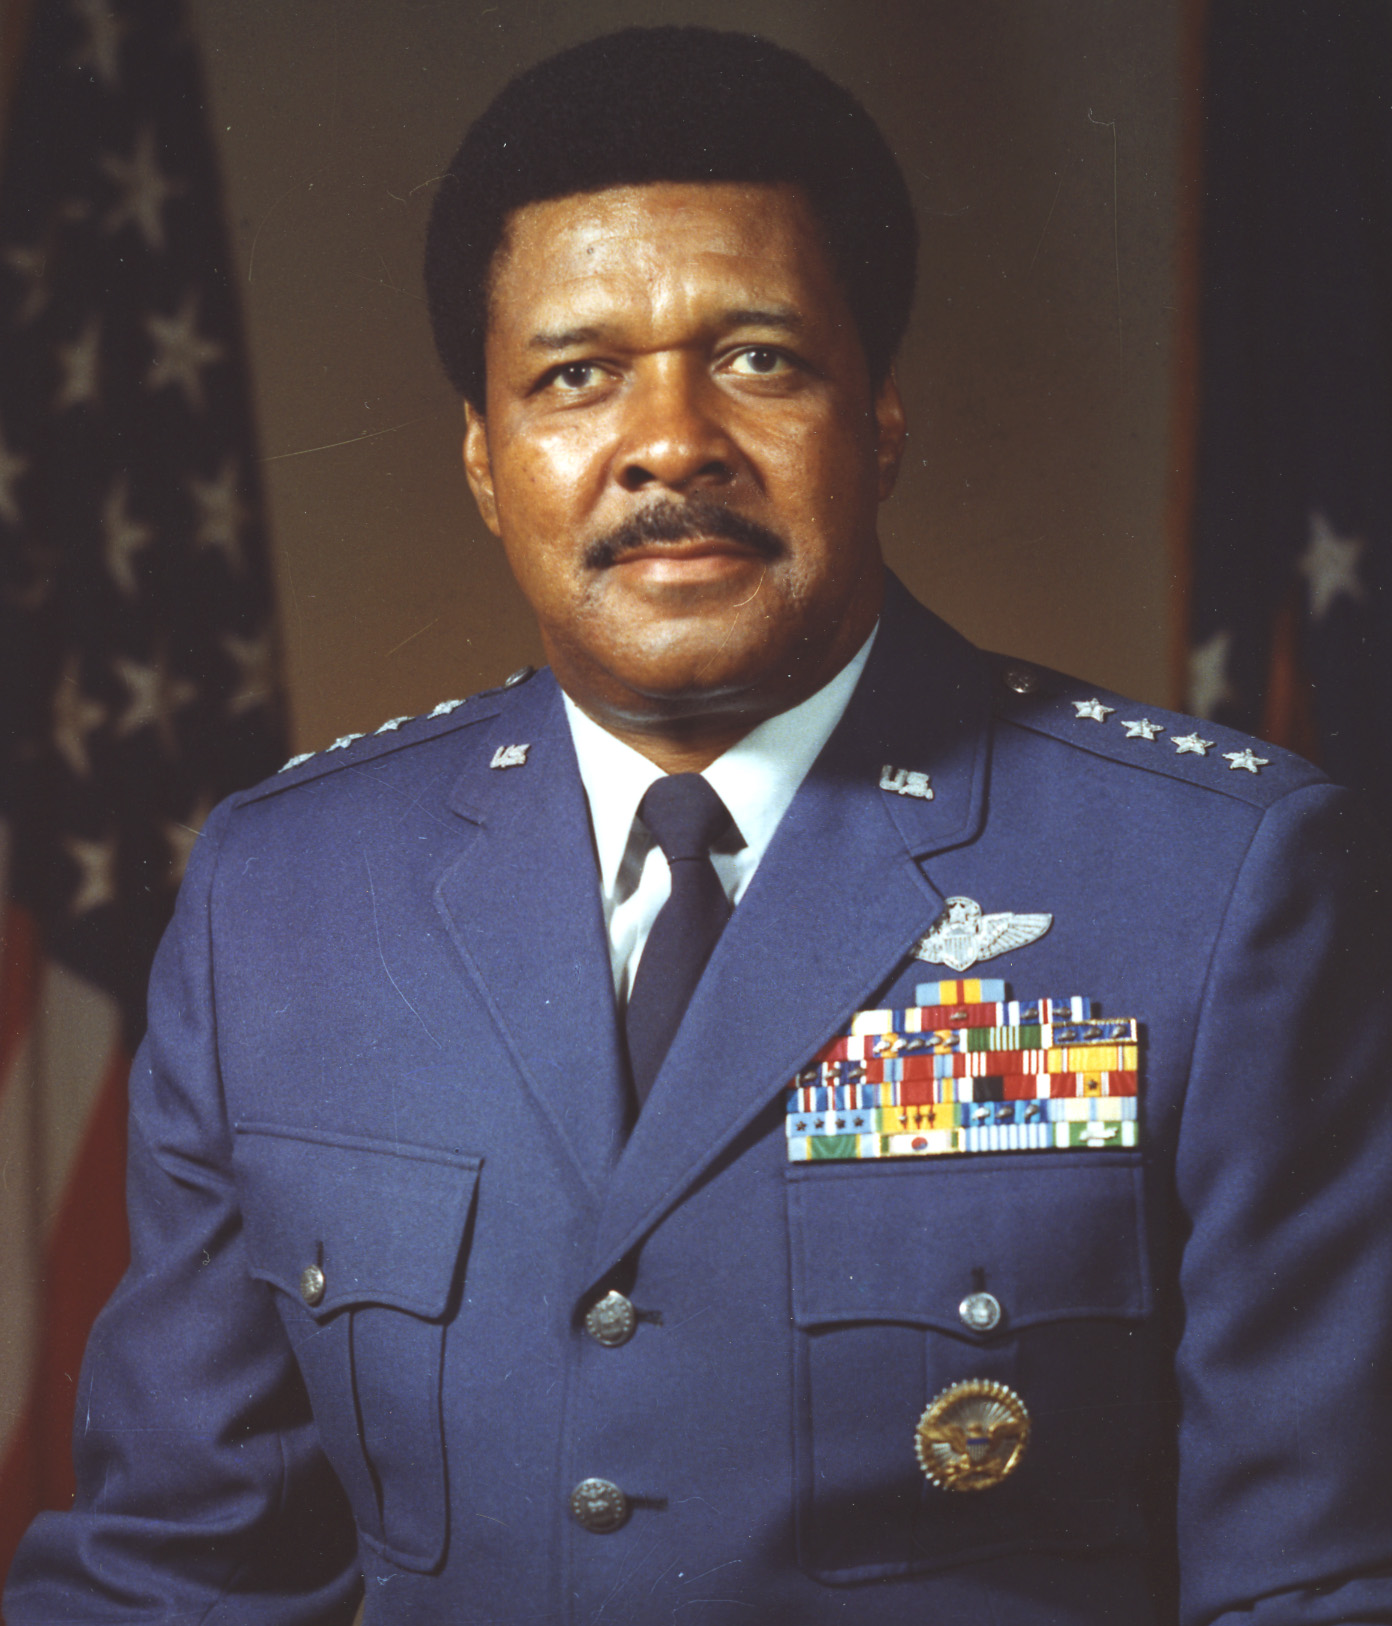 Biographies: GENERAL DANIEL JAMES JR. > U.S. Air Force > Biography Display